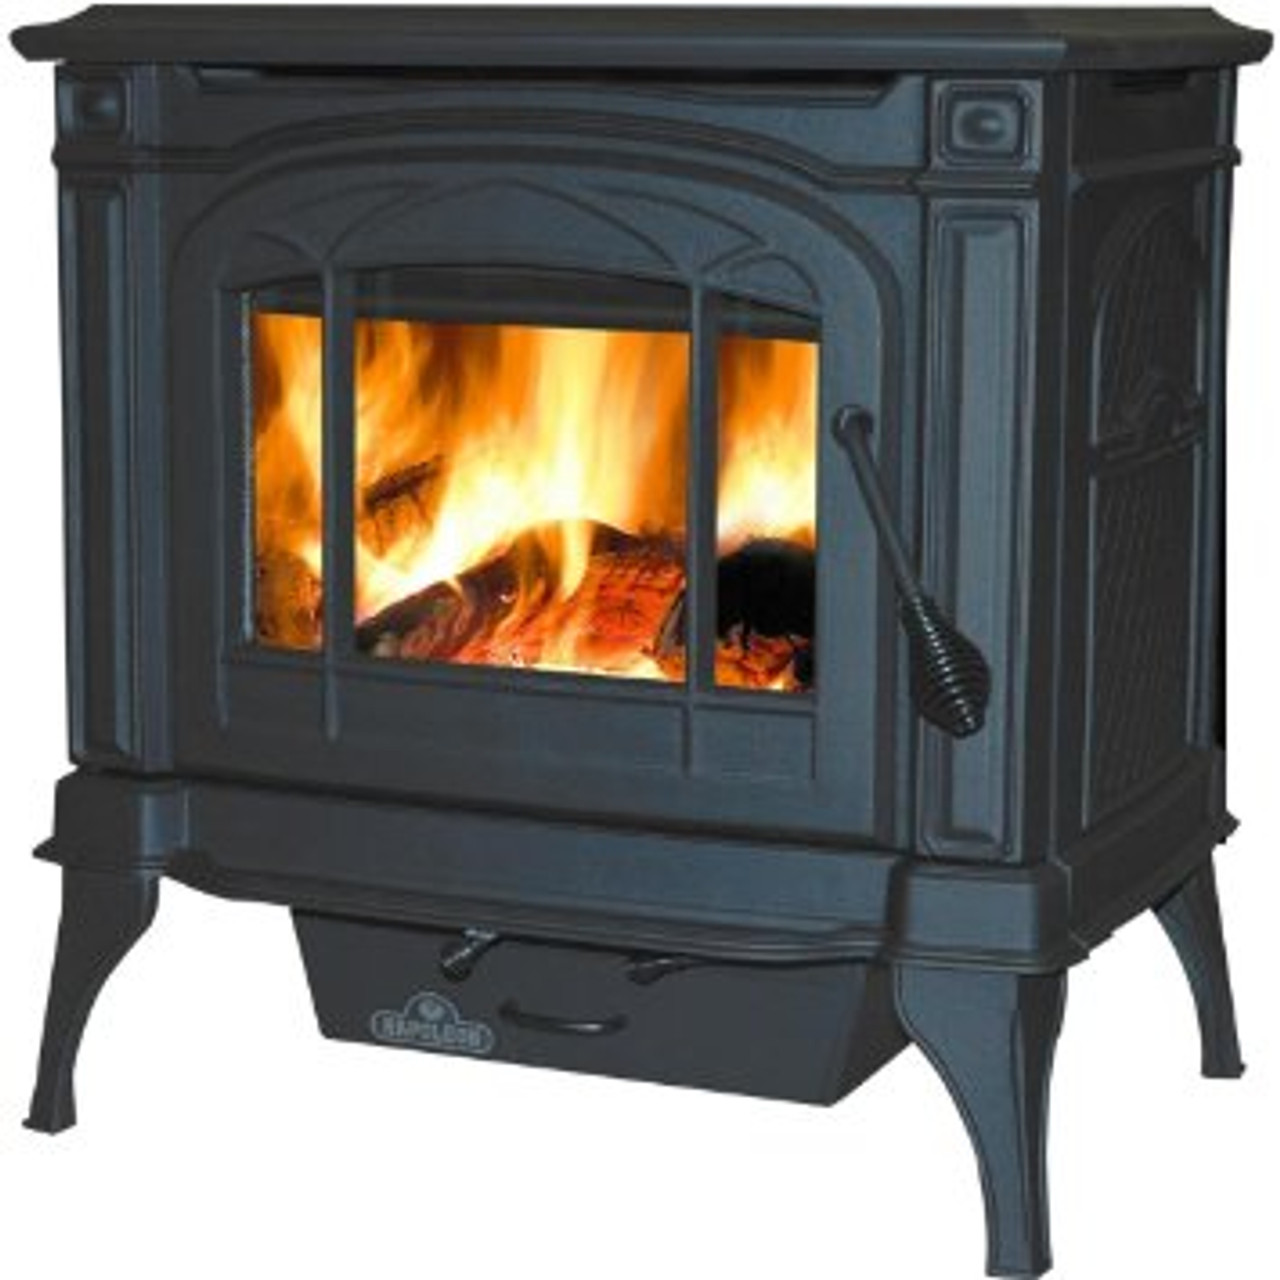 Wood Fireplace Inserts Today Burning Pics Kits Reviews Prices Yebuzz Napoleon Banff 1100c Wood Stove